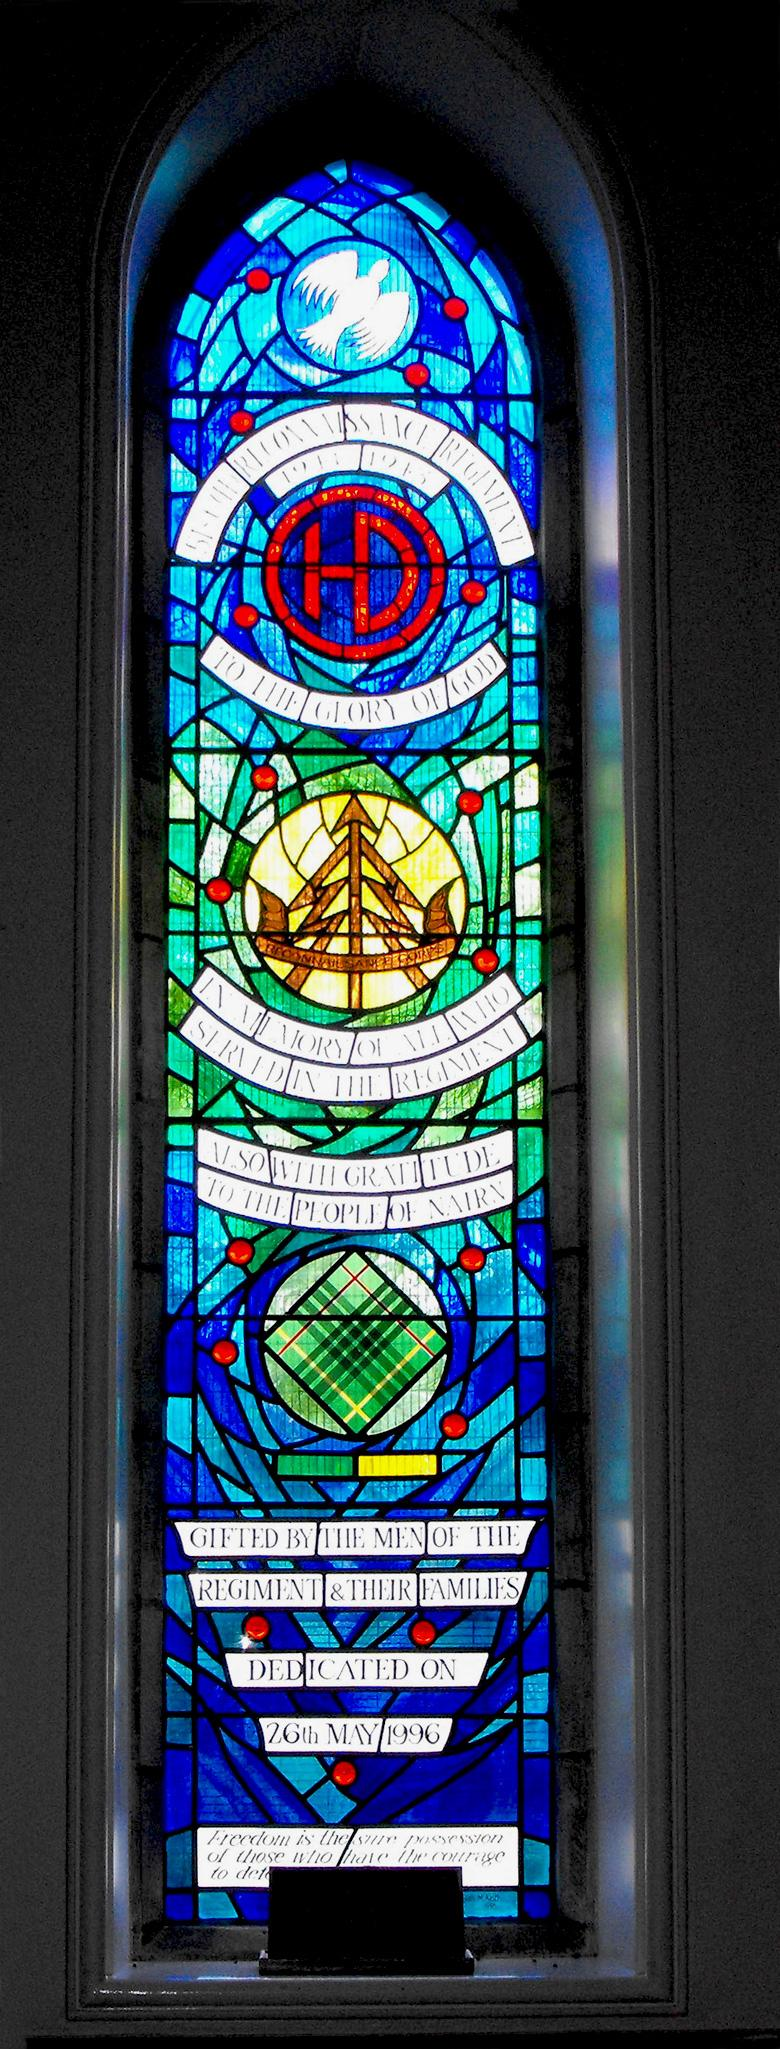 51 (H) Recce Reg Memorial Window